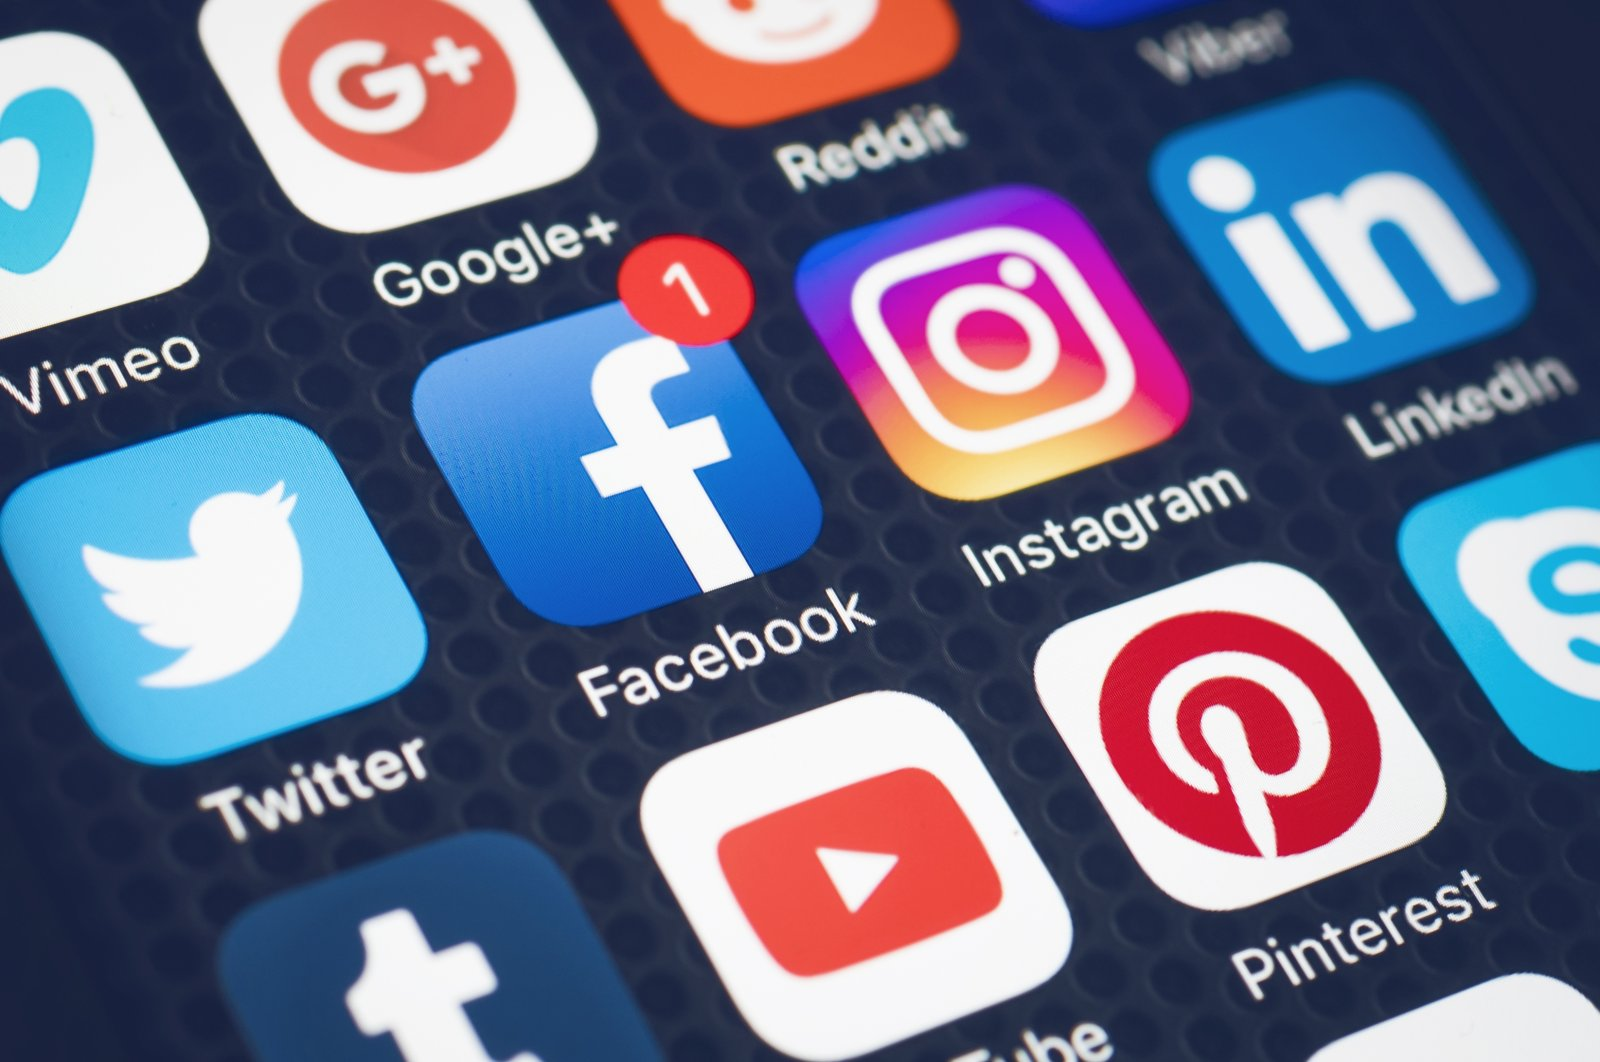 Logos of social apps are seen on a screen of a phone, in Hilversum, Netherlands, Feb. 6, 2017. (Shutterstock Photo)